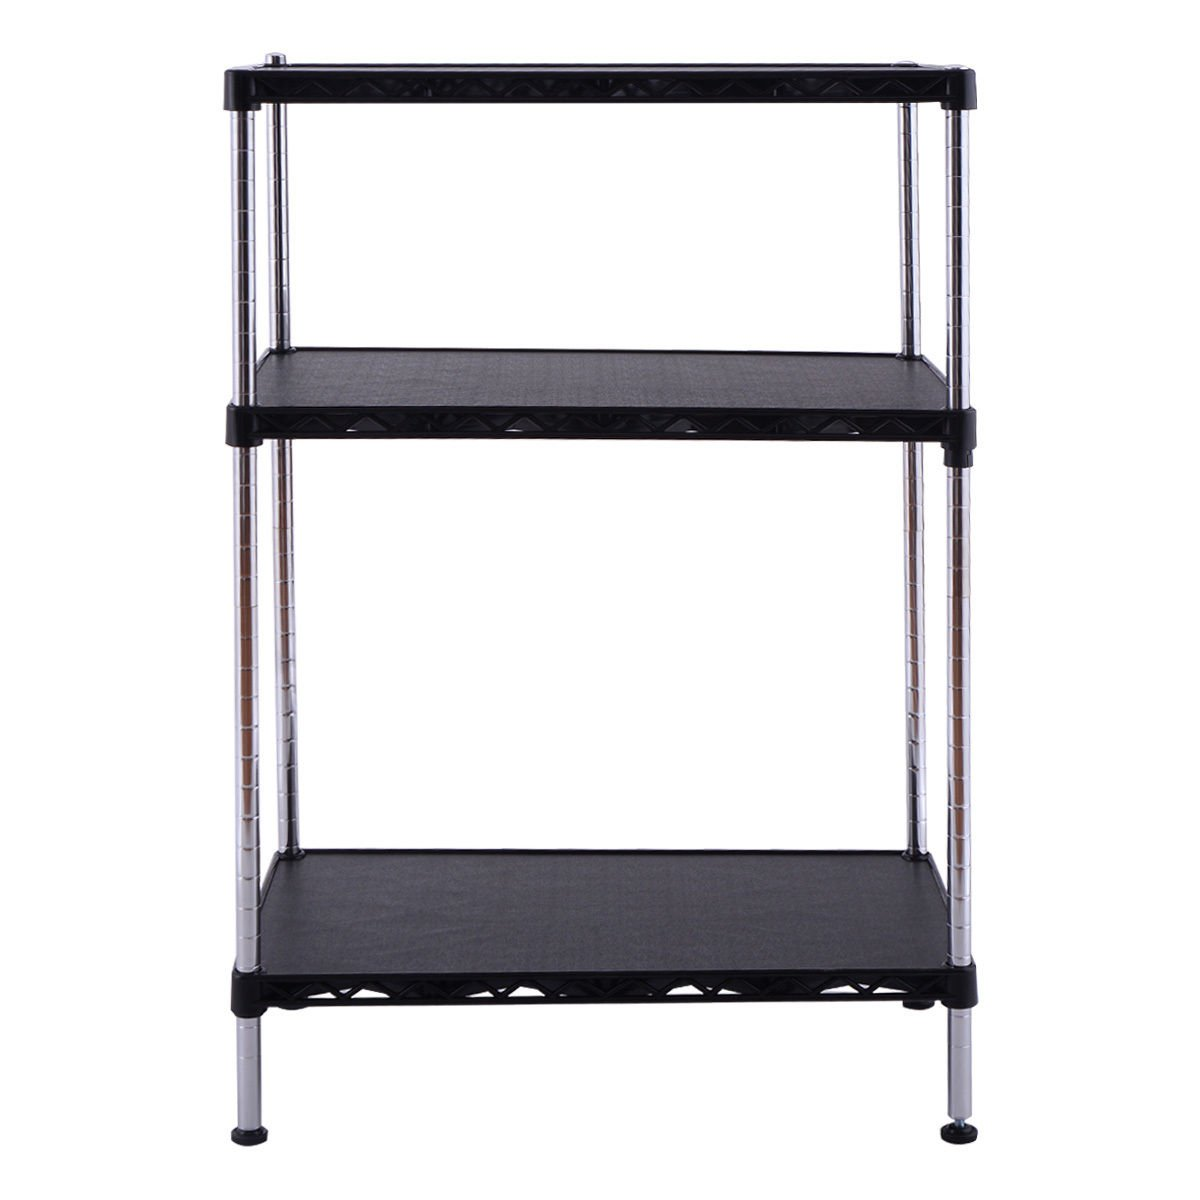 Global House Products GHP 23.6''x13.8''x35.4'' Black Chrome Plated Steel Frame & Plastic 3-Tier Storage Rack